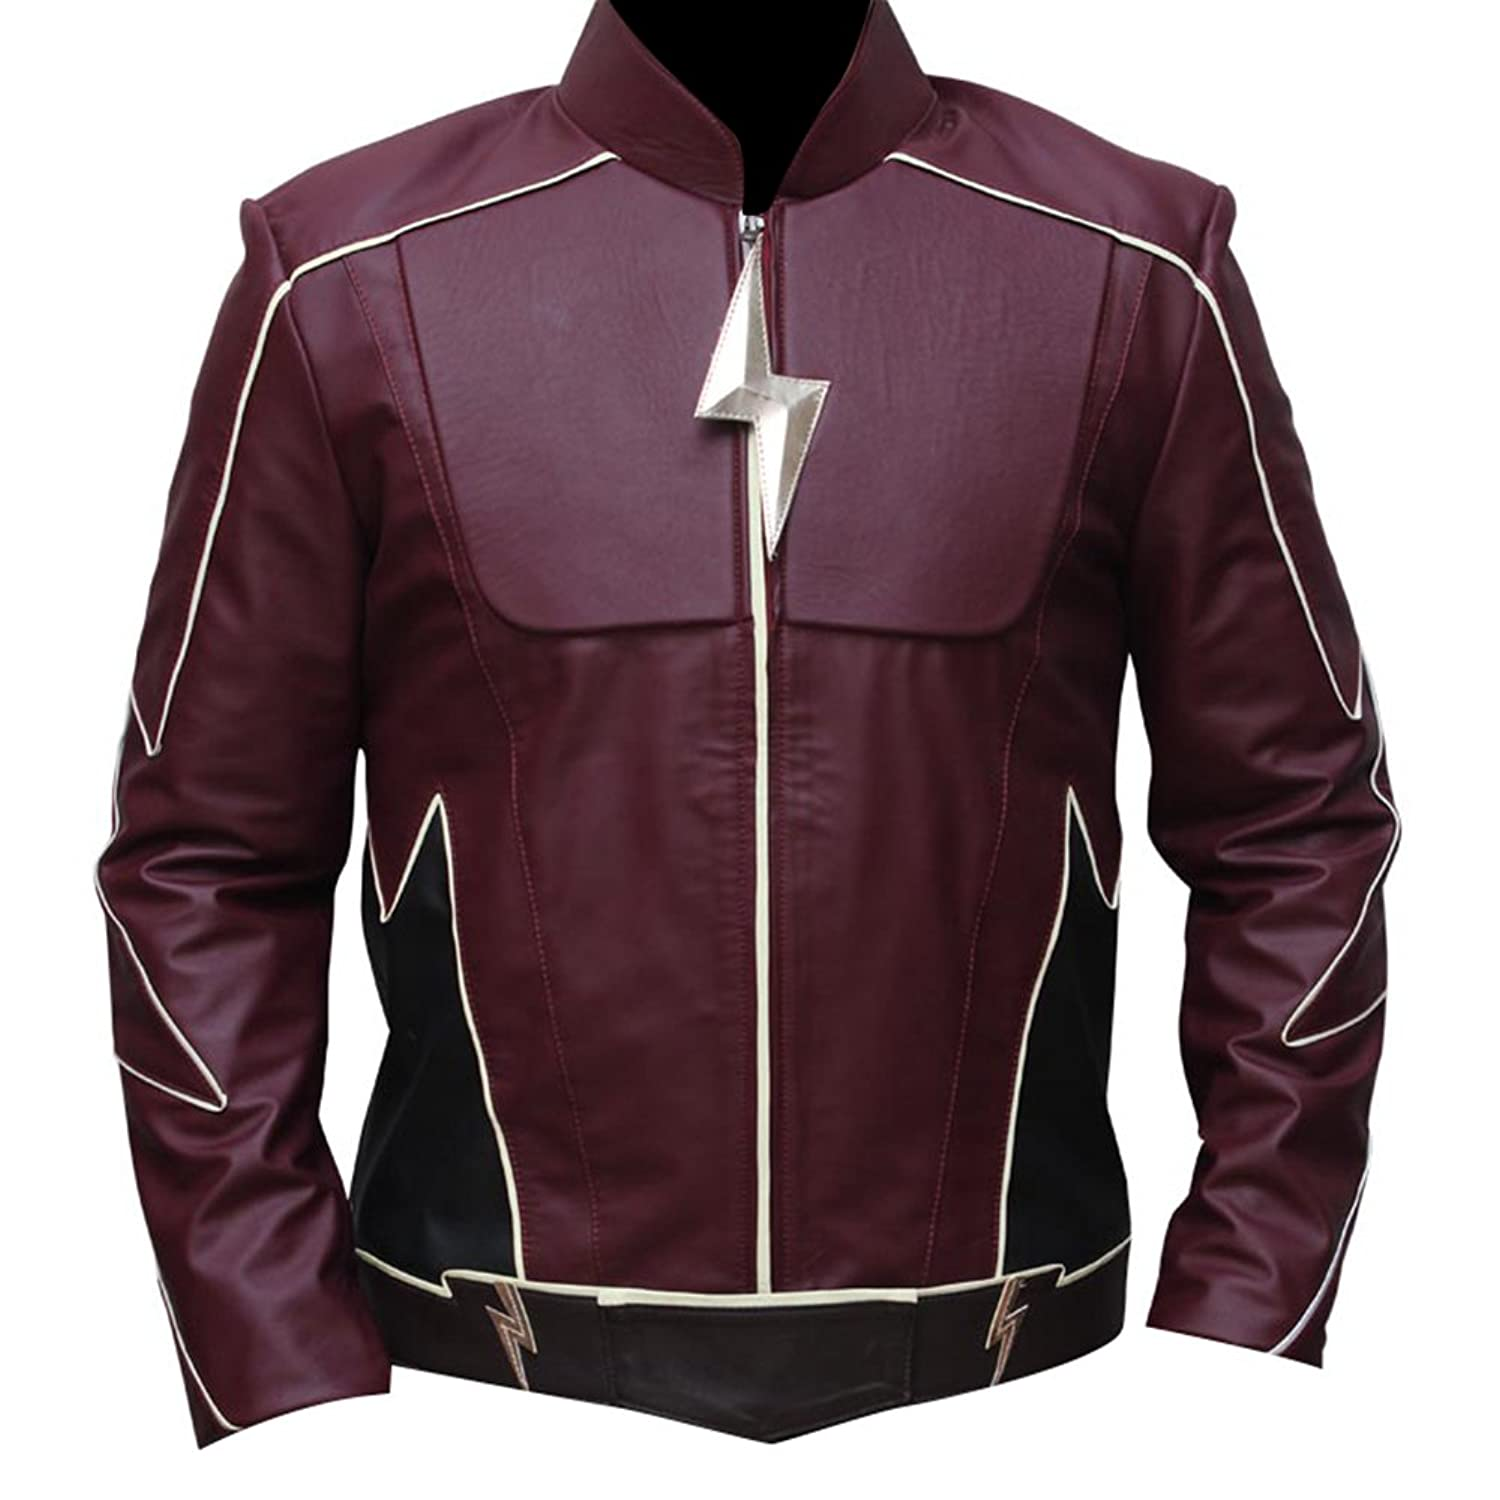 Henry Allen Flash Season 2 The Real Jay Garrick Jacket